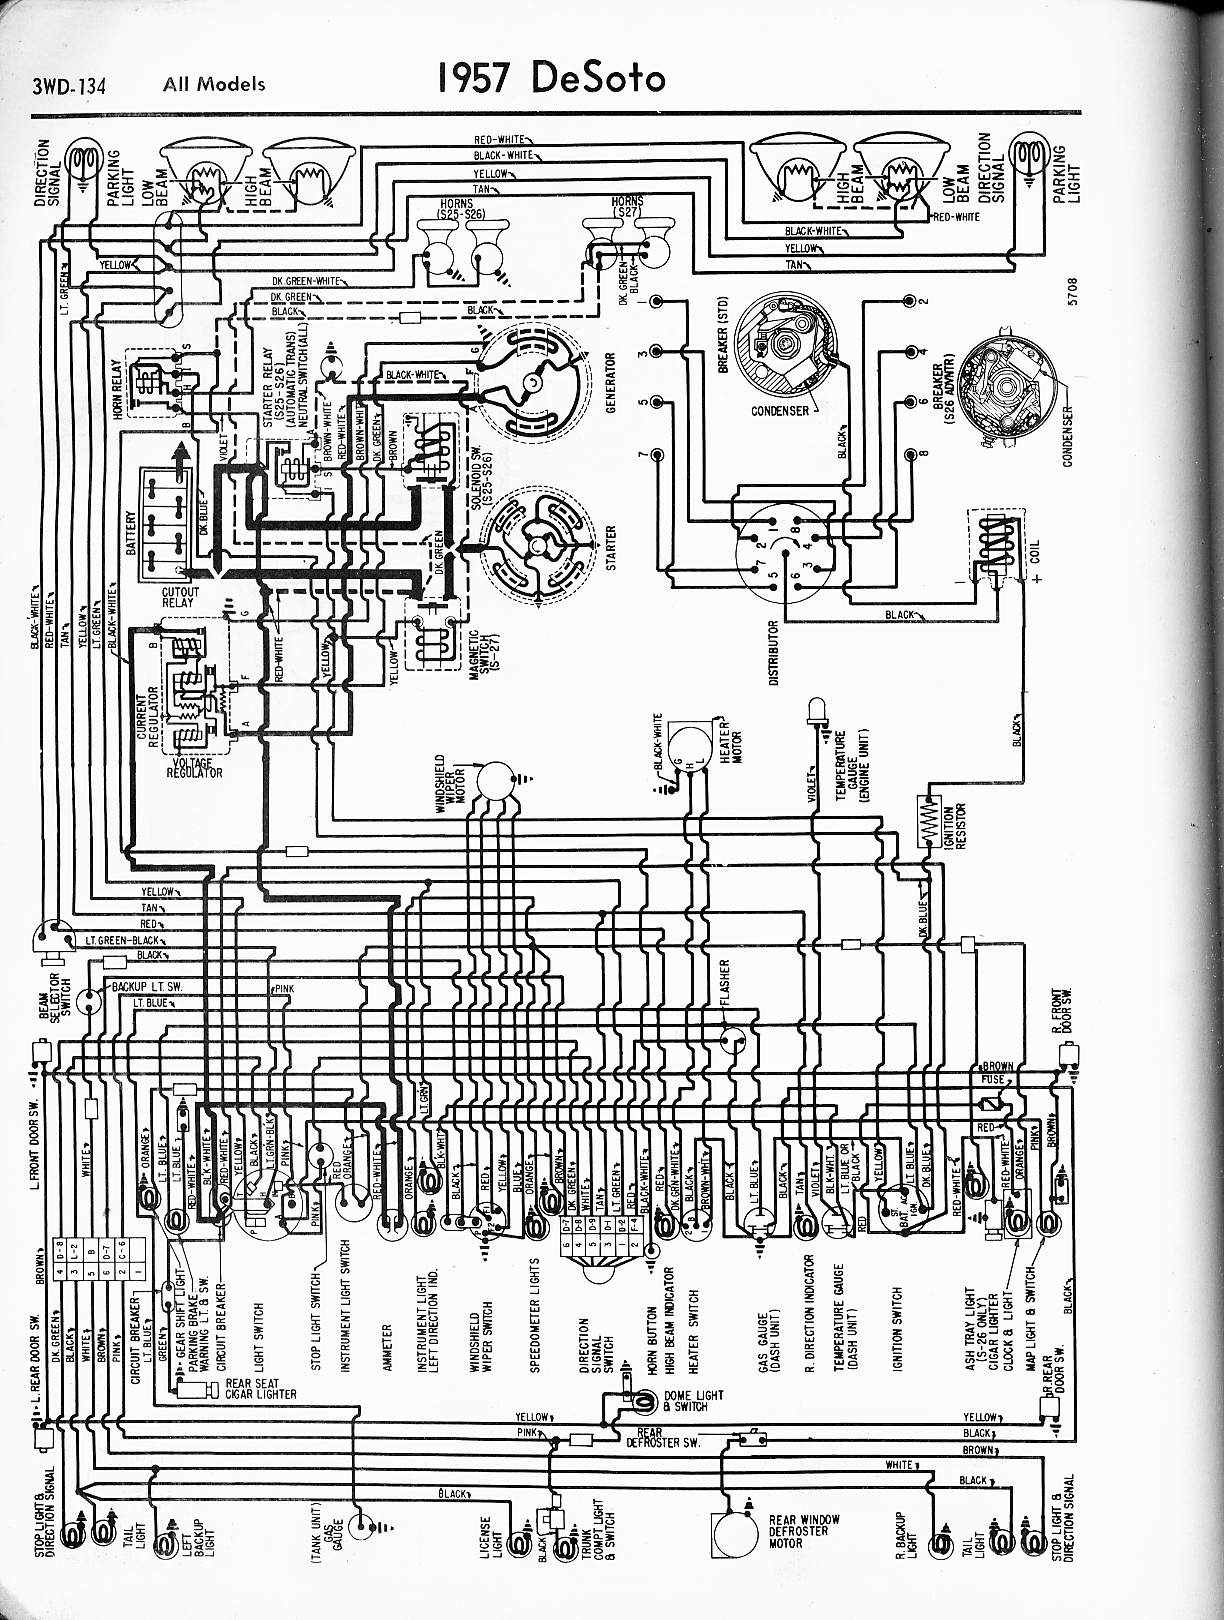 Wiring Diagram 1953 Plymouth Vehicle Diagrams 1948 Chrysler Windsor 1951 Desoto Battery Good Continuity To Rh Justanswer